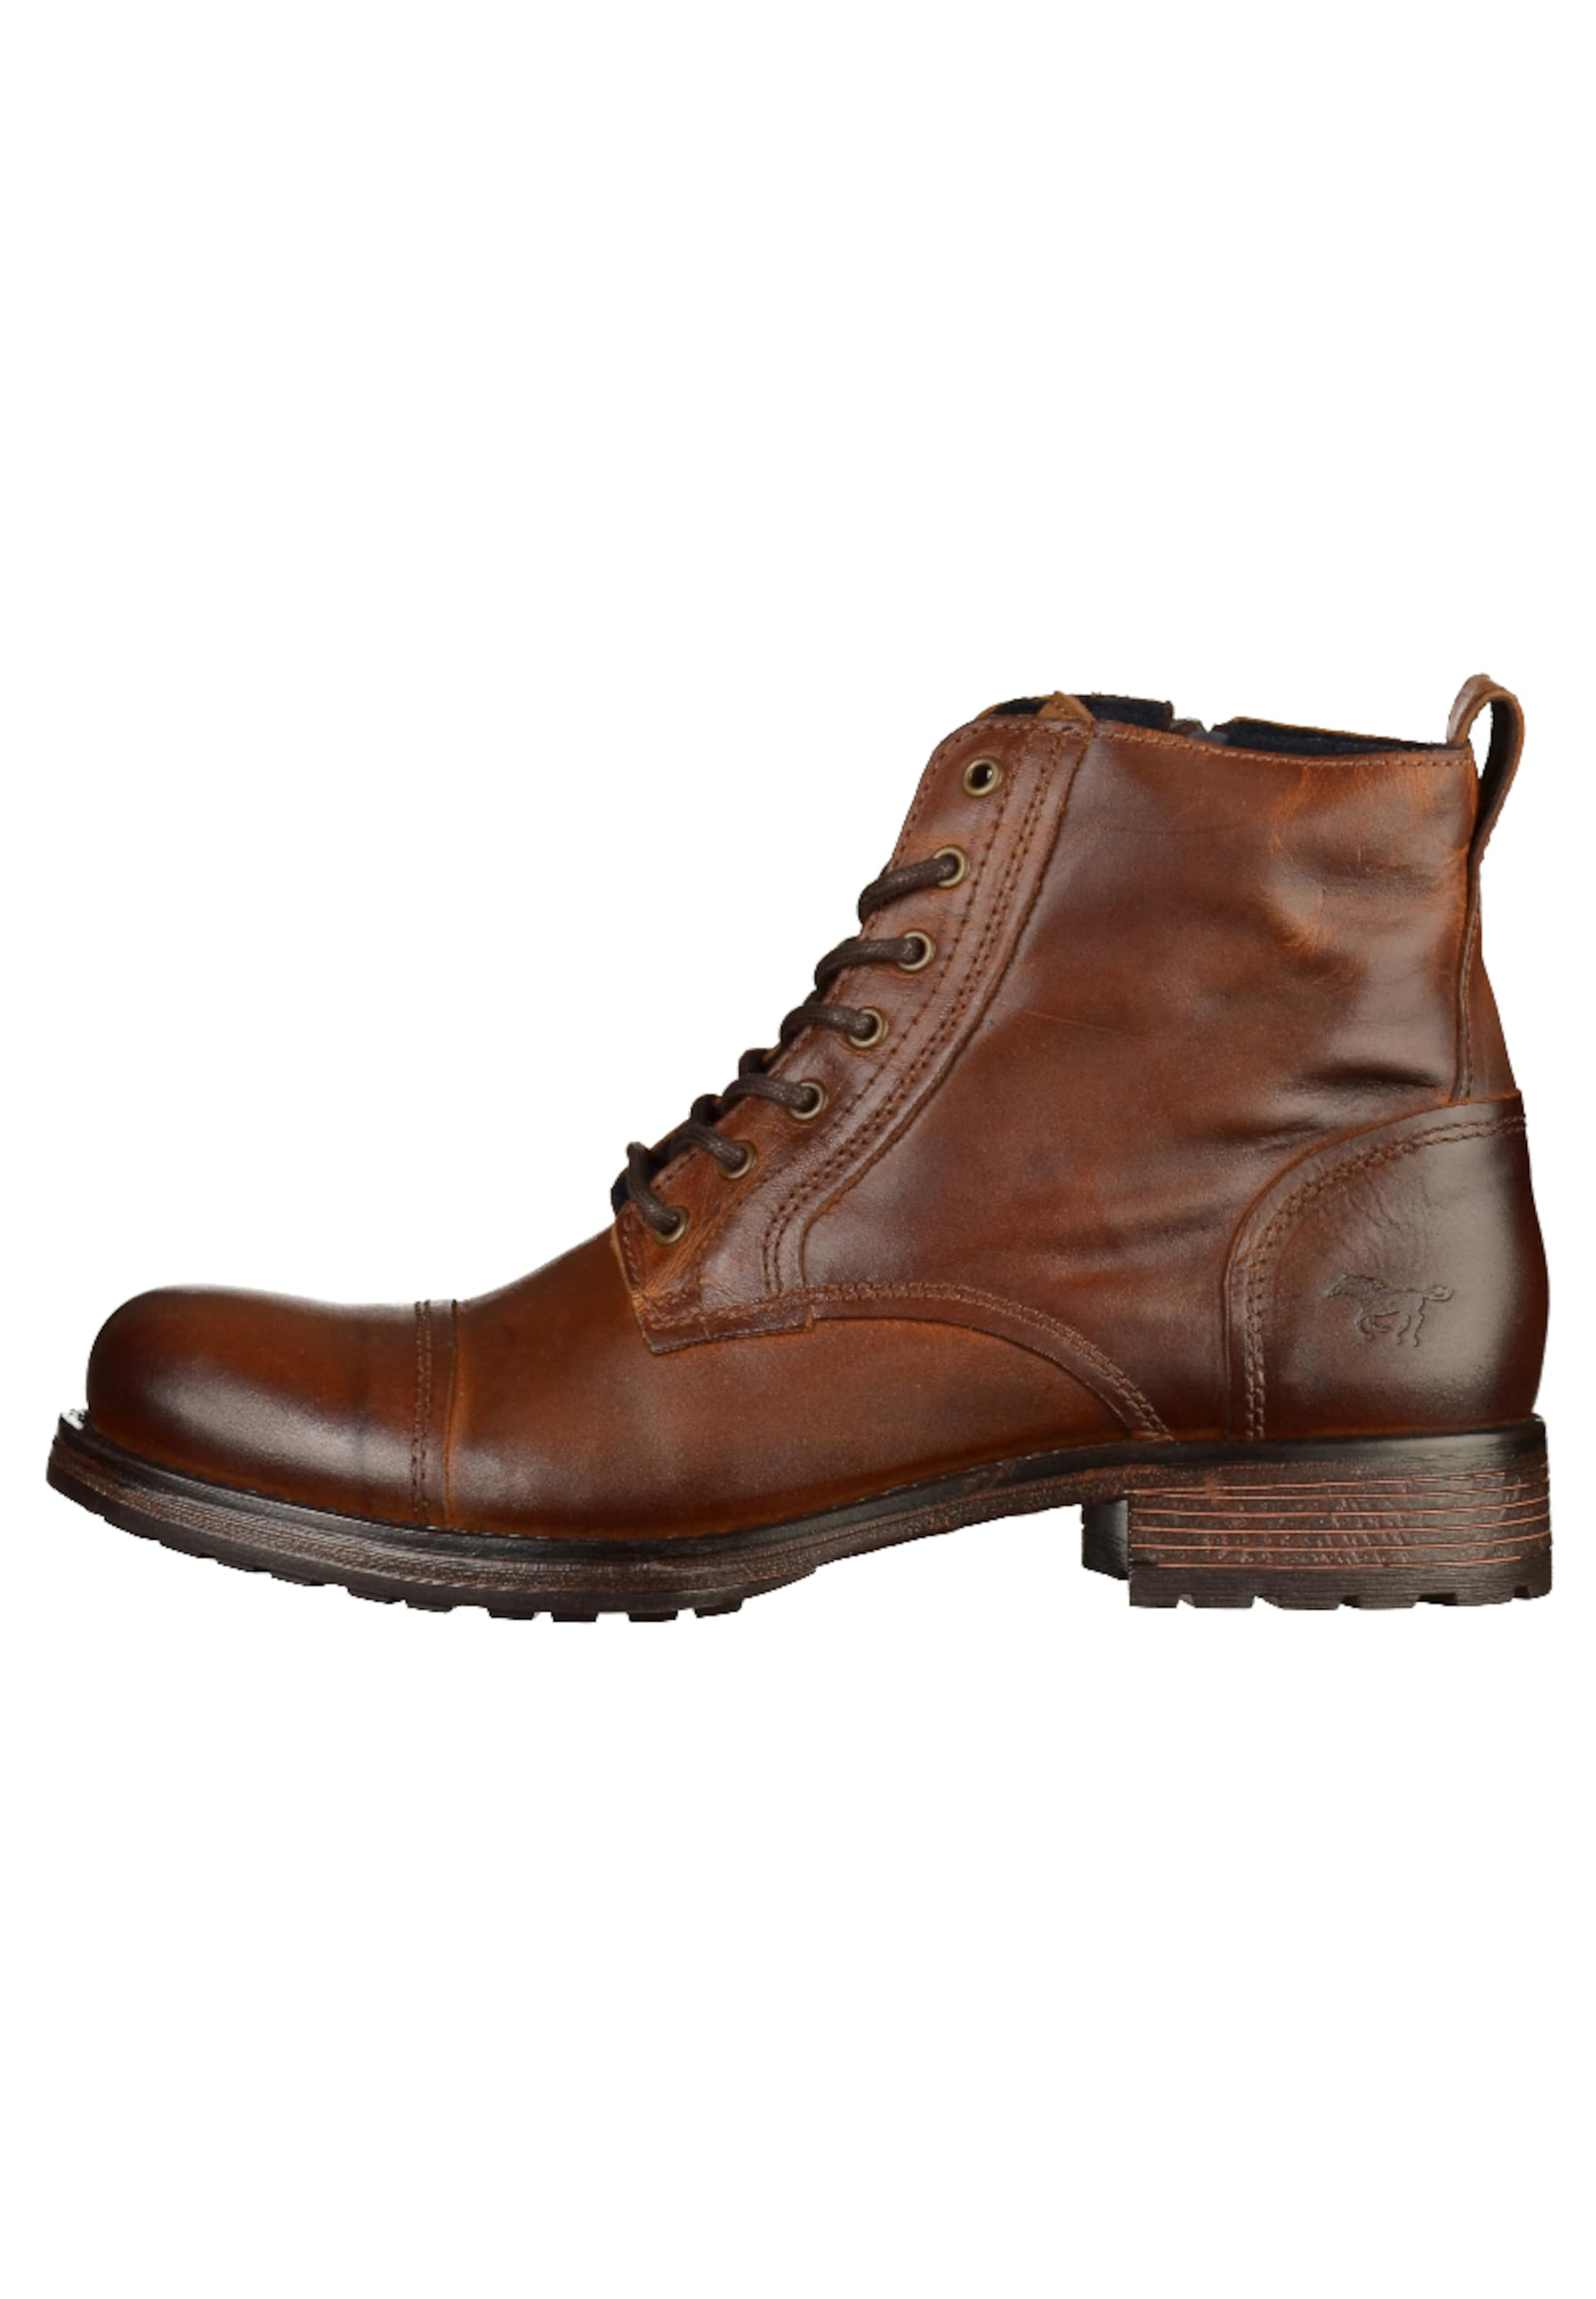 In Stiefelette Mustang Stiefelette Mustang Braun Stiefelette Mustang In Braun In AjRqS4Lc35